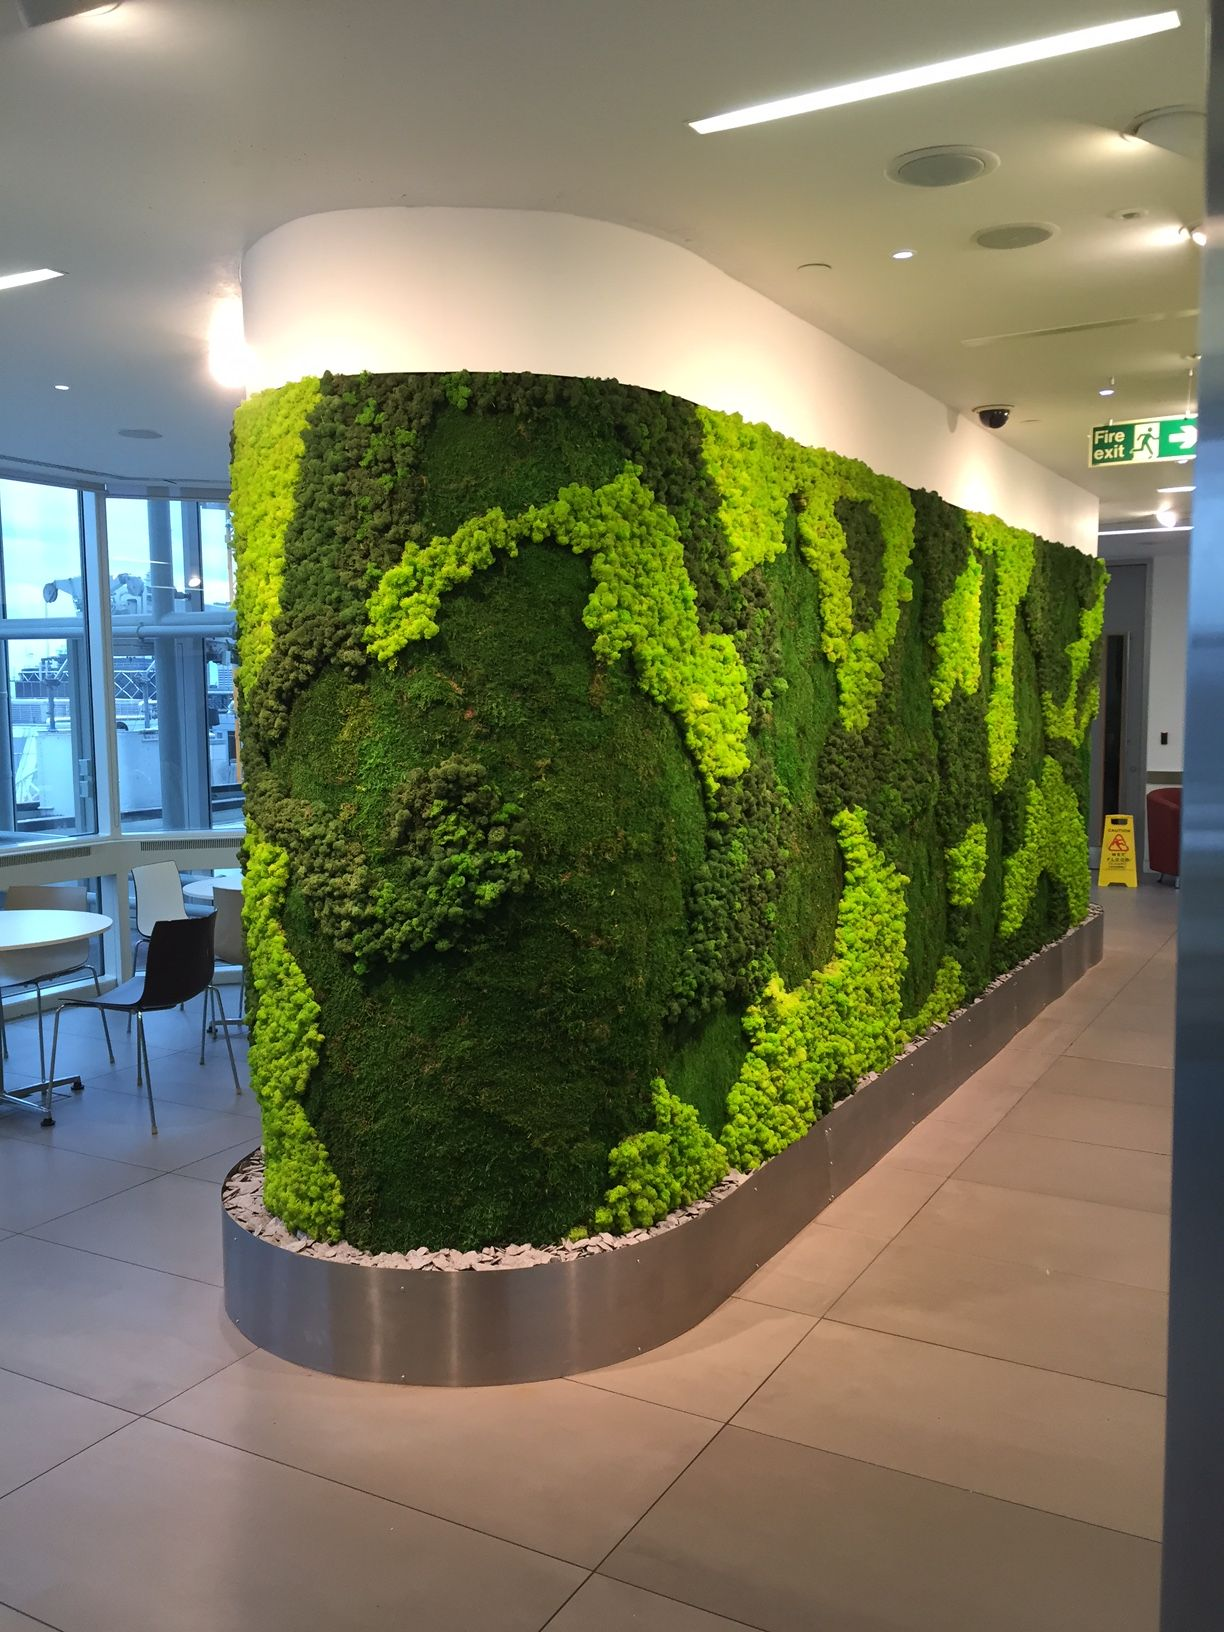 New 15m2 Moss Wall In Central London Office Büropflanzen Gartenmauer Designs Ummauerter Garten